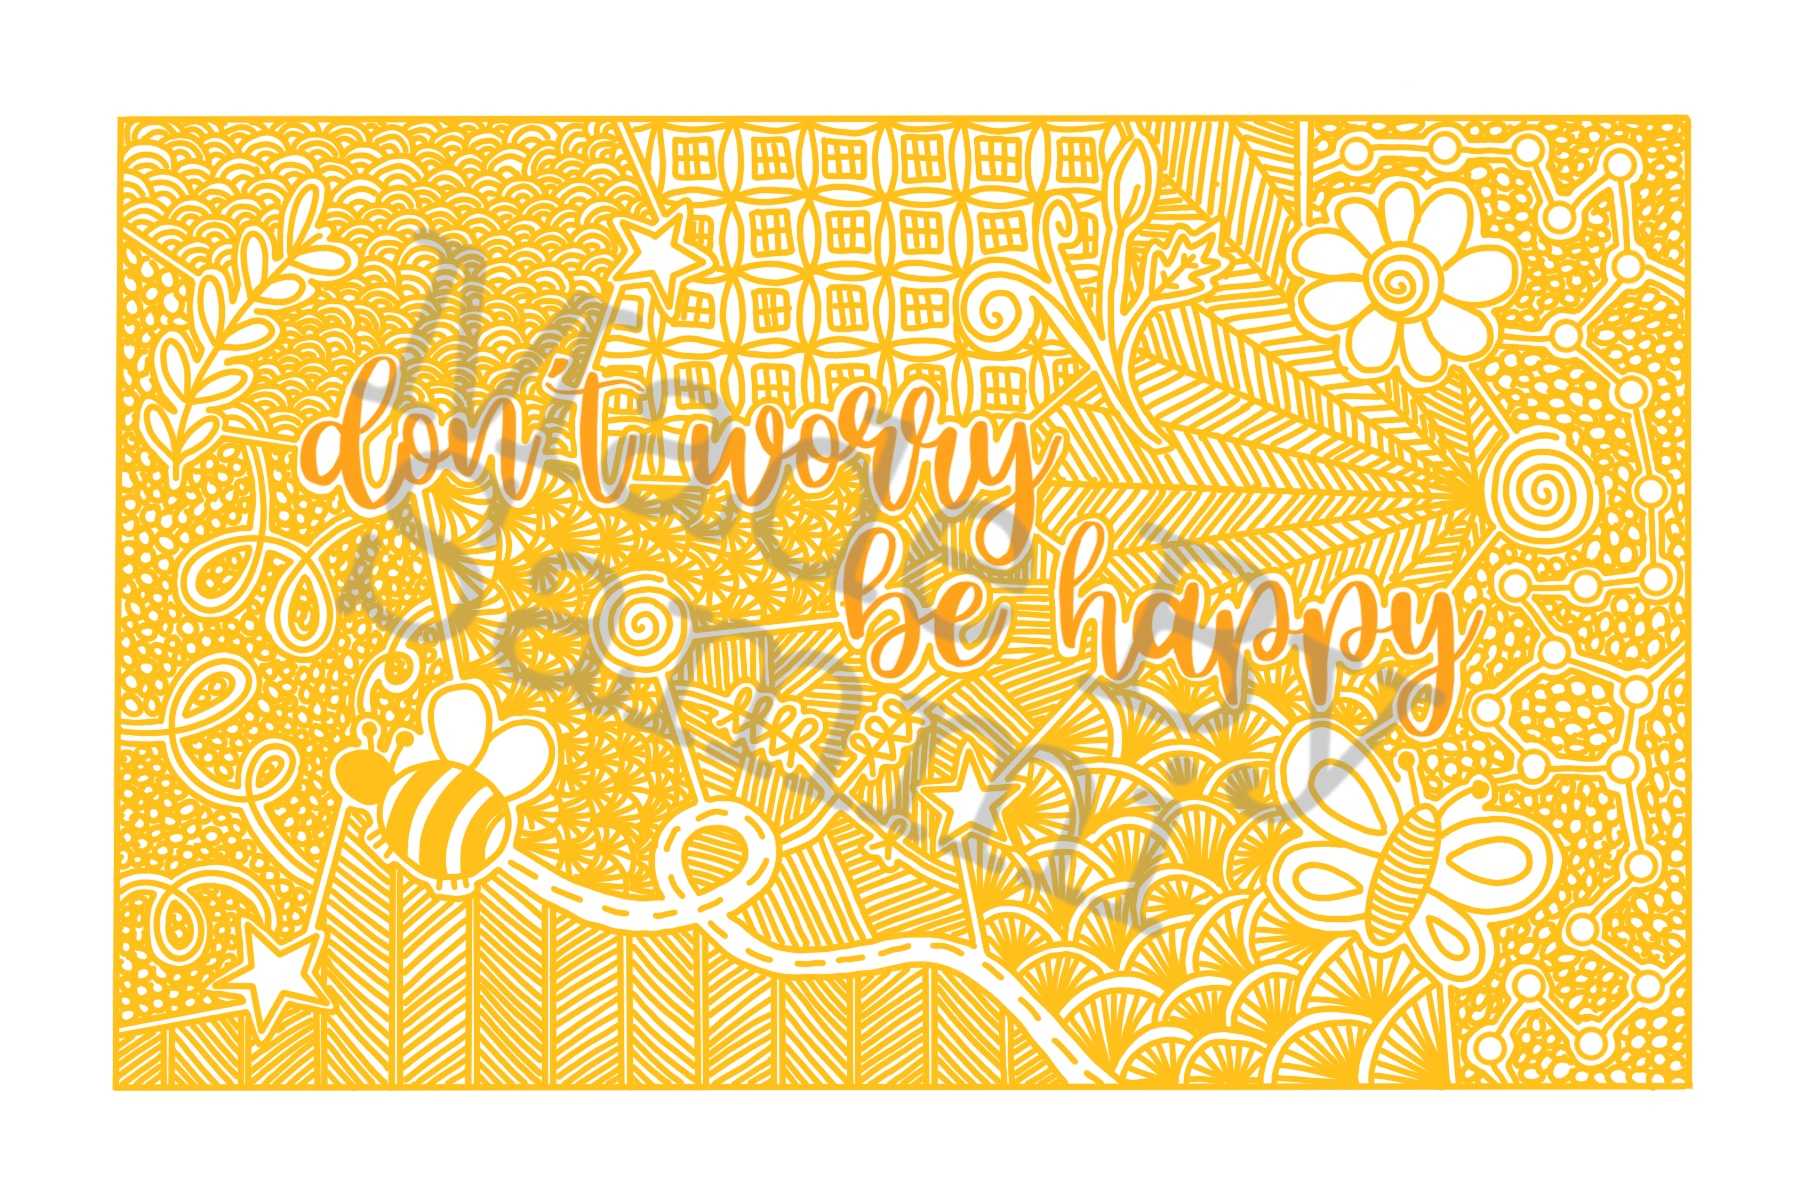 Don't worry be happy- downloadable print via @chooicenz